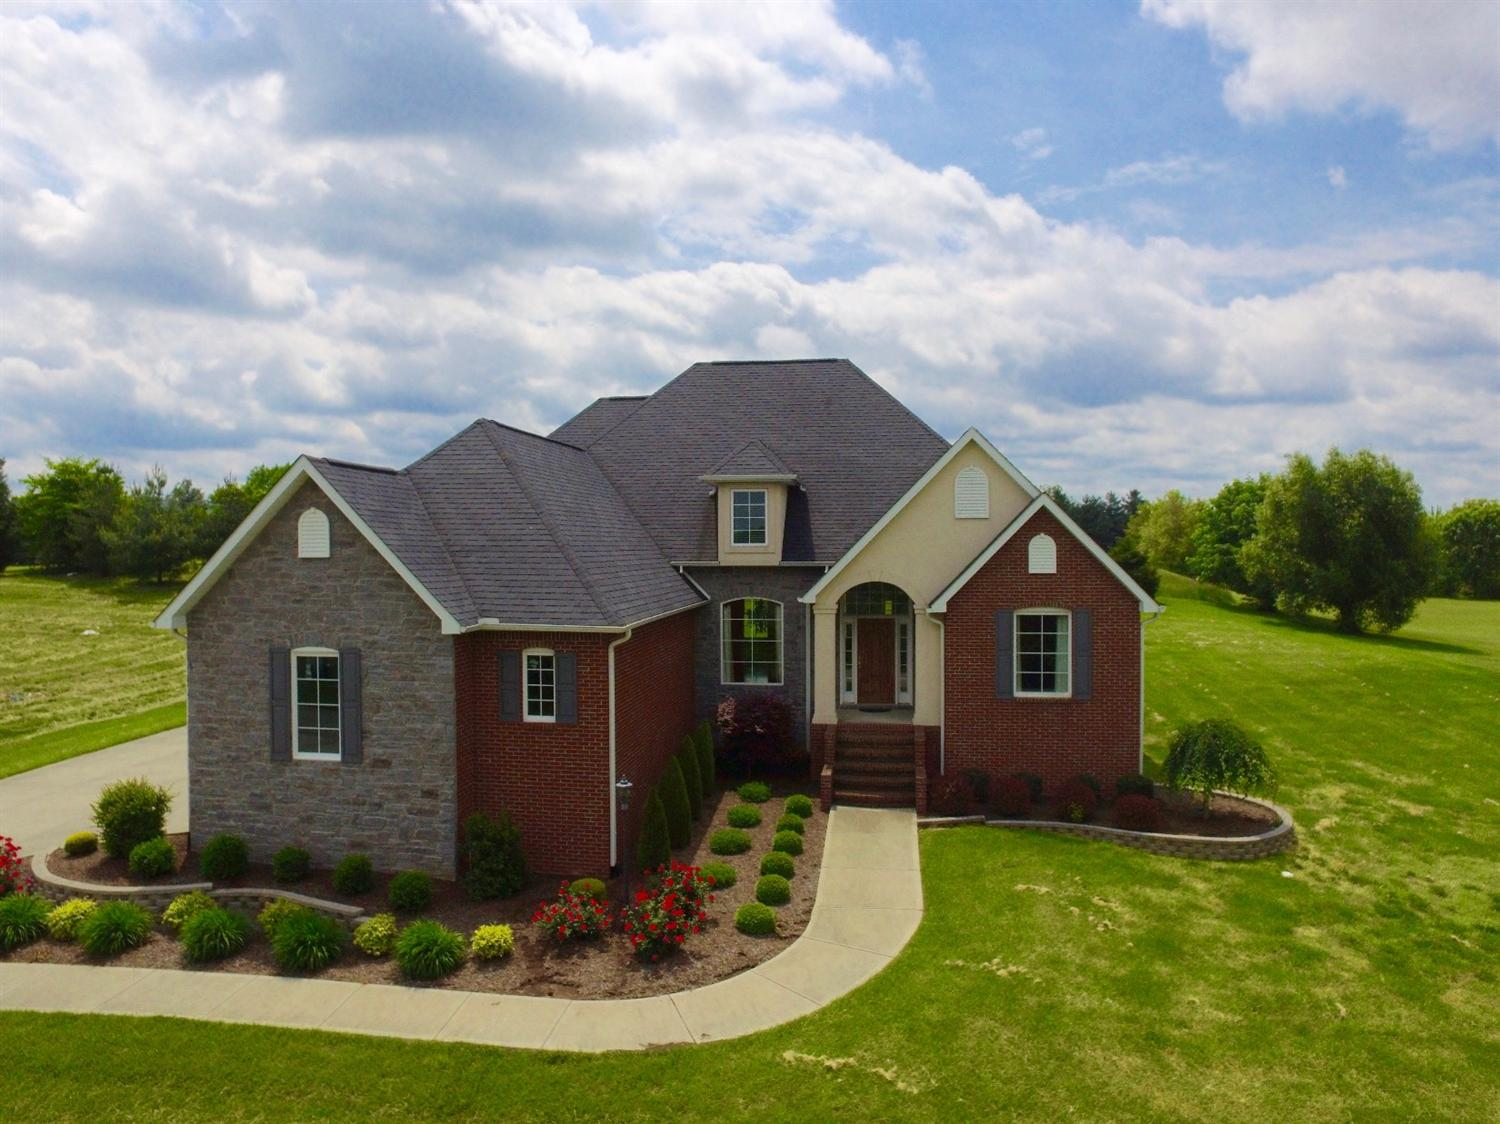 Homes For Sale in 231 Colson Dr, Bronston, KY 42518 Subdivision